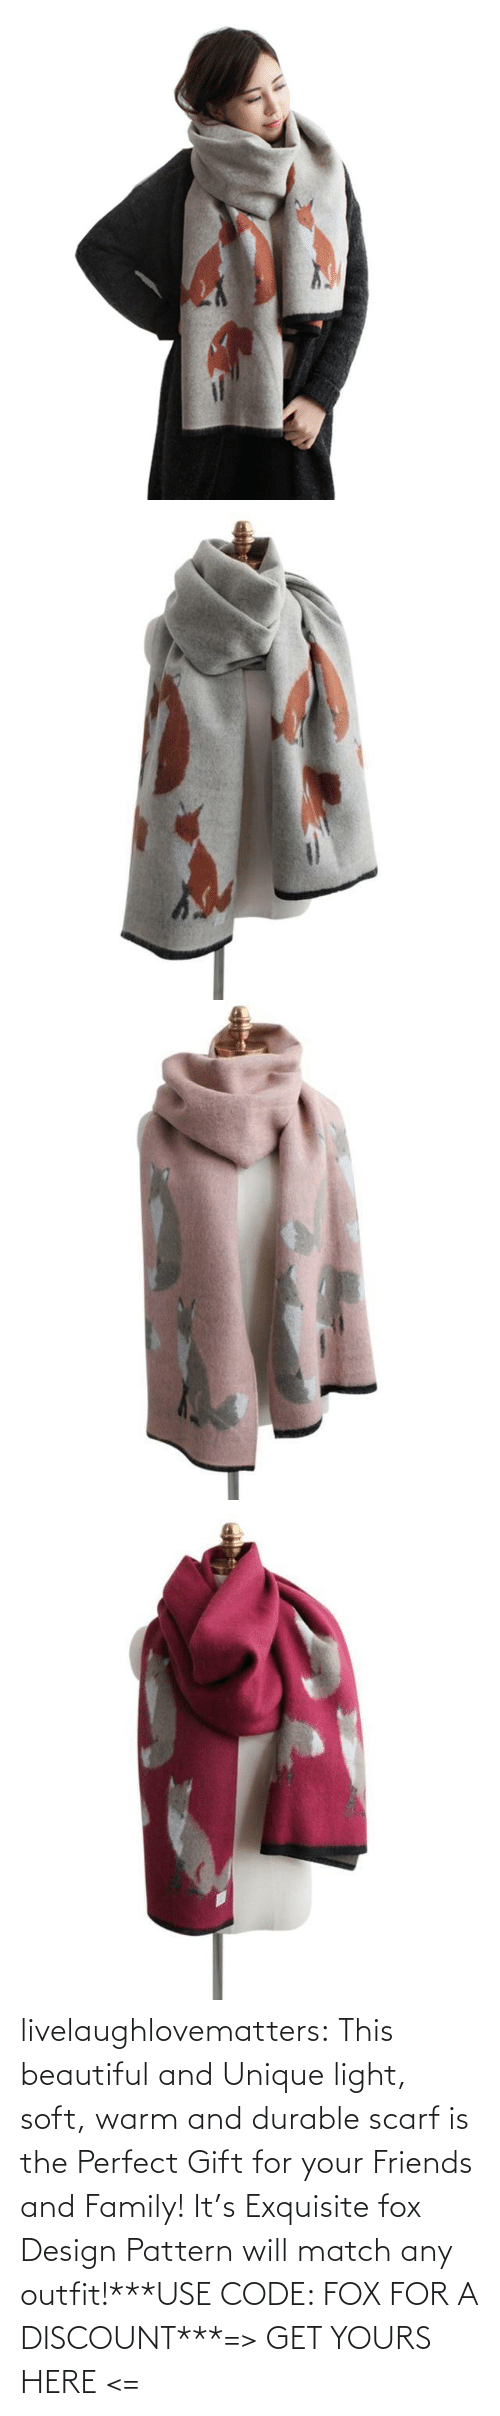 warm: livelaughlovematters:  This beautiful and Unique light, soft, warm and durable scarf is the Perfect Gift for your Friends and Family! It's Exquisite fox Design Pattern will match any outfit!***USE CODE: FOX FOR A DISCOUNT***=> GET YOURS HERE <=